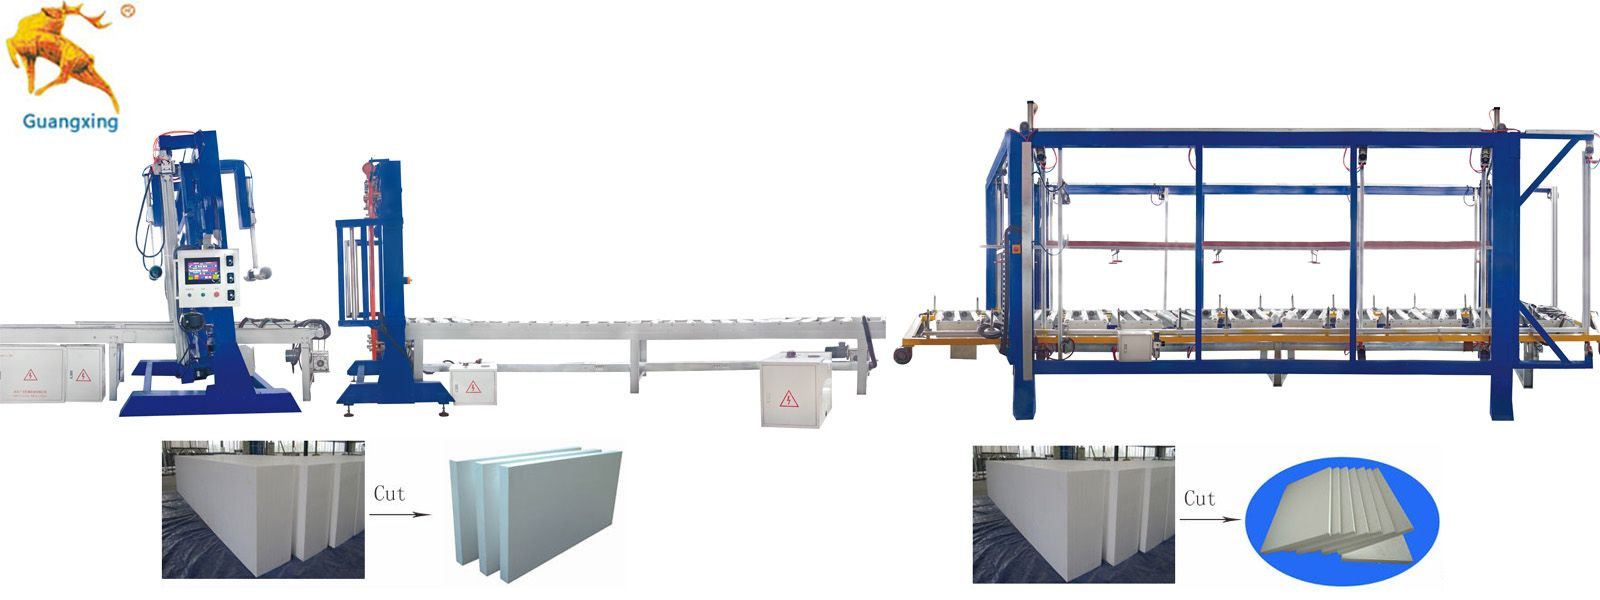 Automatic Thermocol Cutting Machine